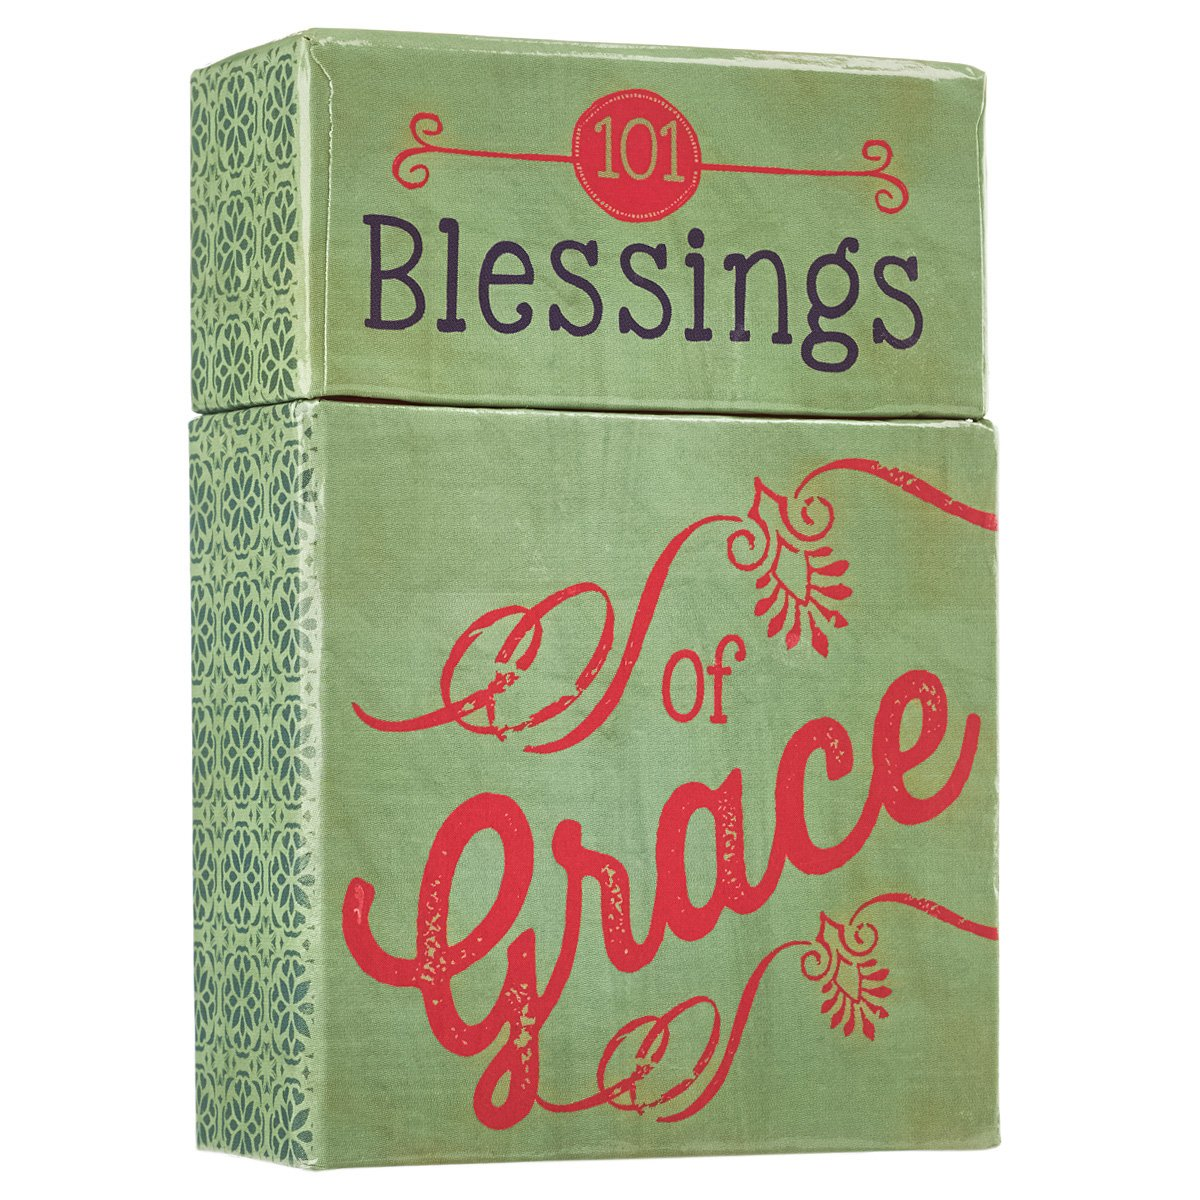 Retro Blessings 101 Grace Cards product image